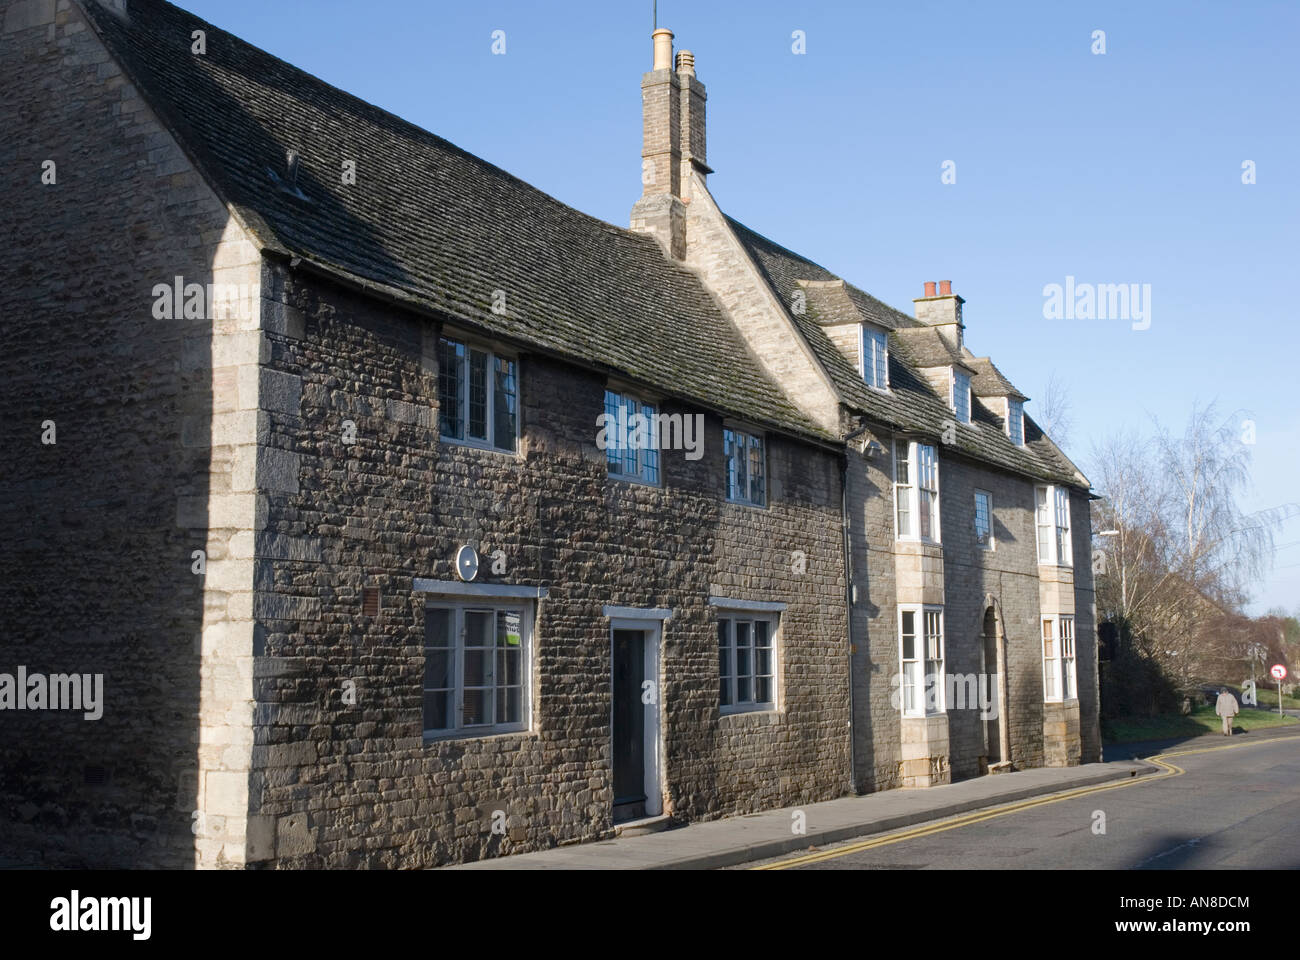 Old houses in North Street Oundle England - Stock Image